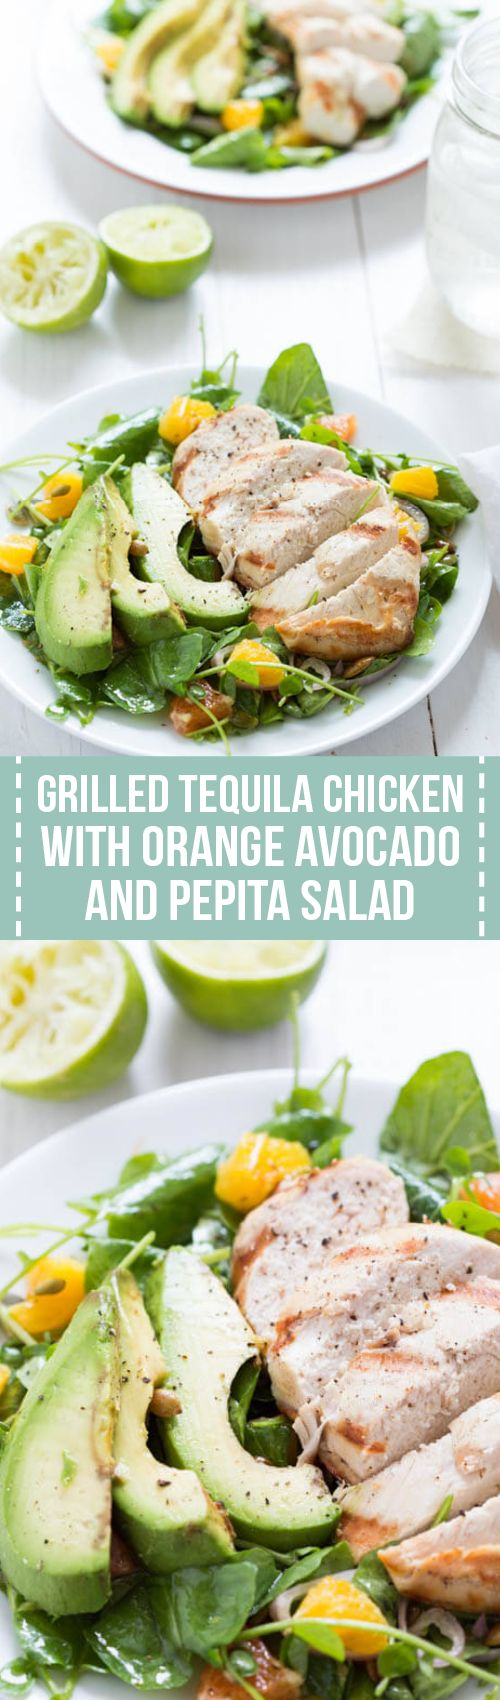 Grilled Tequila Chicken with Orange, Avocado and Pepita Salad is a fresh and easy meal. Chicken is marinated in a tequila-lime sauce, grilled and then served over a bed of watercress with oranges, pepitas, and grilled avocado!